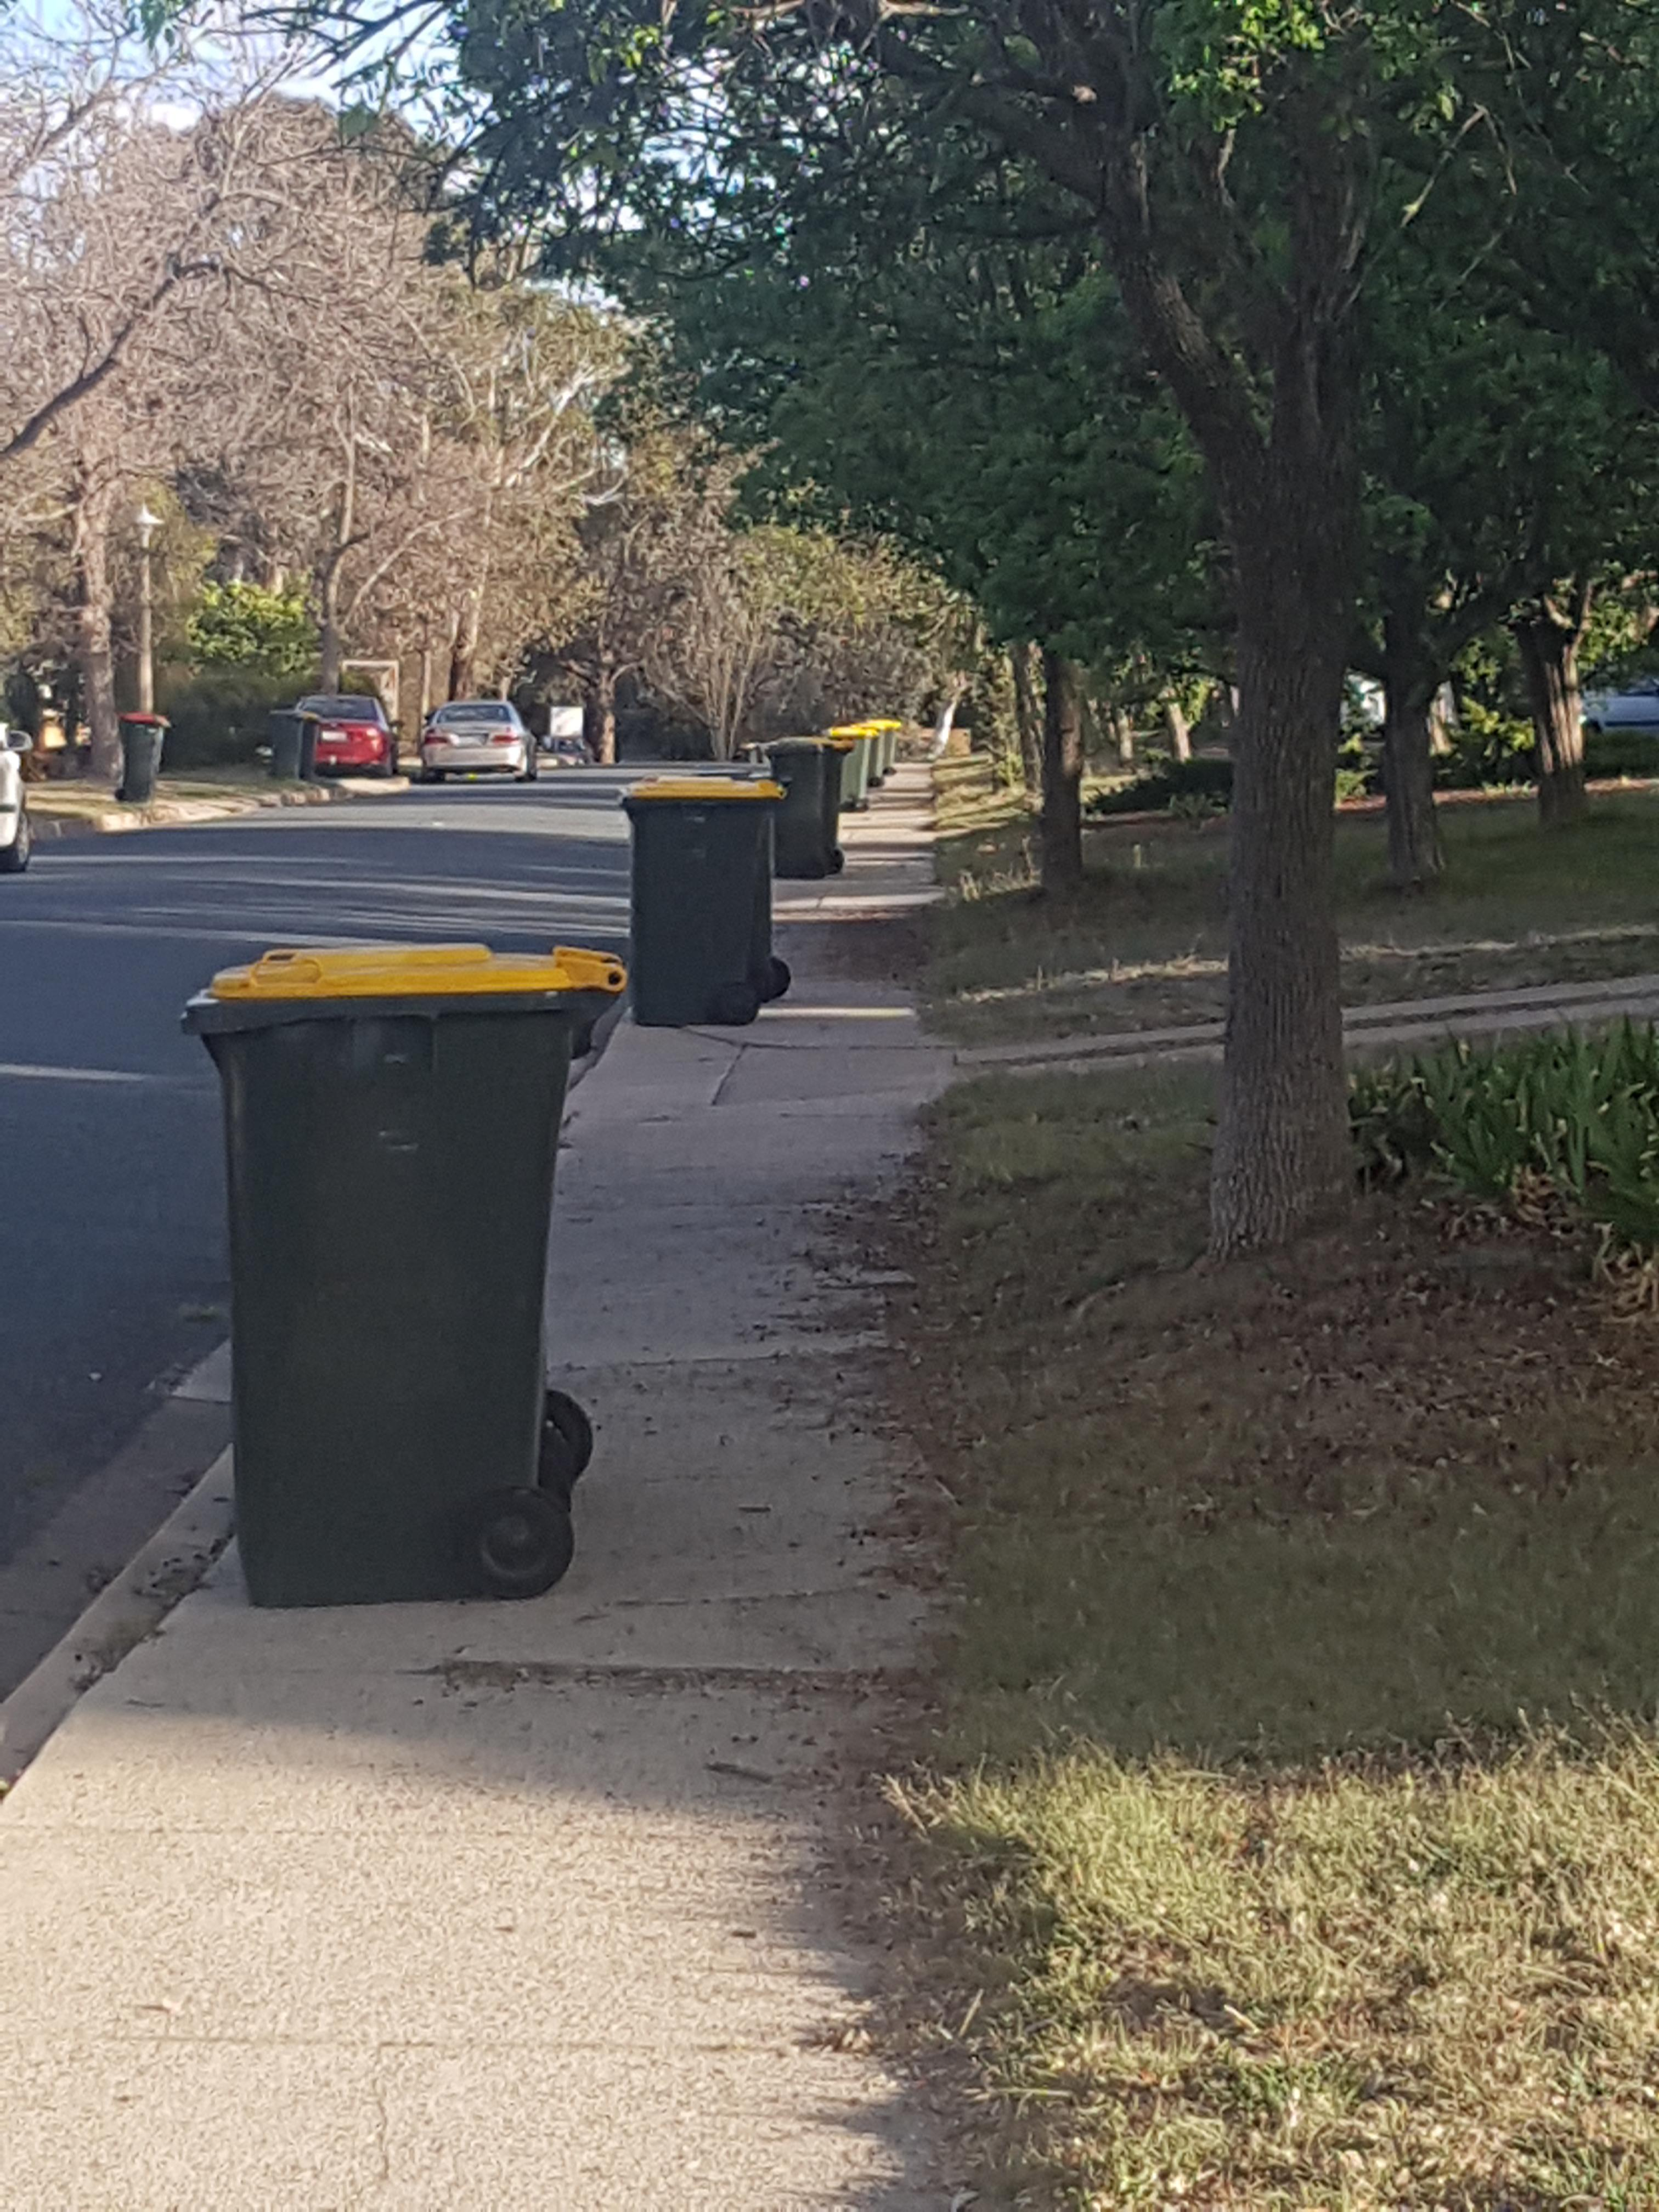 Canberra Today What S Happening With The Bins Today Is There A Garbo Holiday